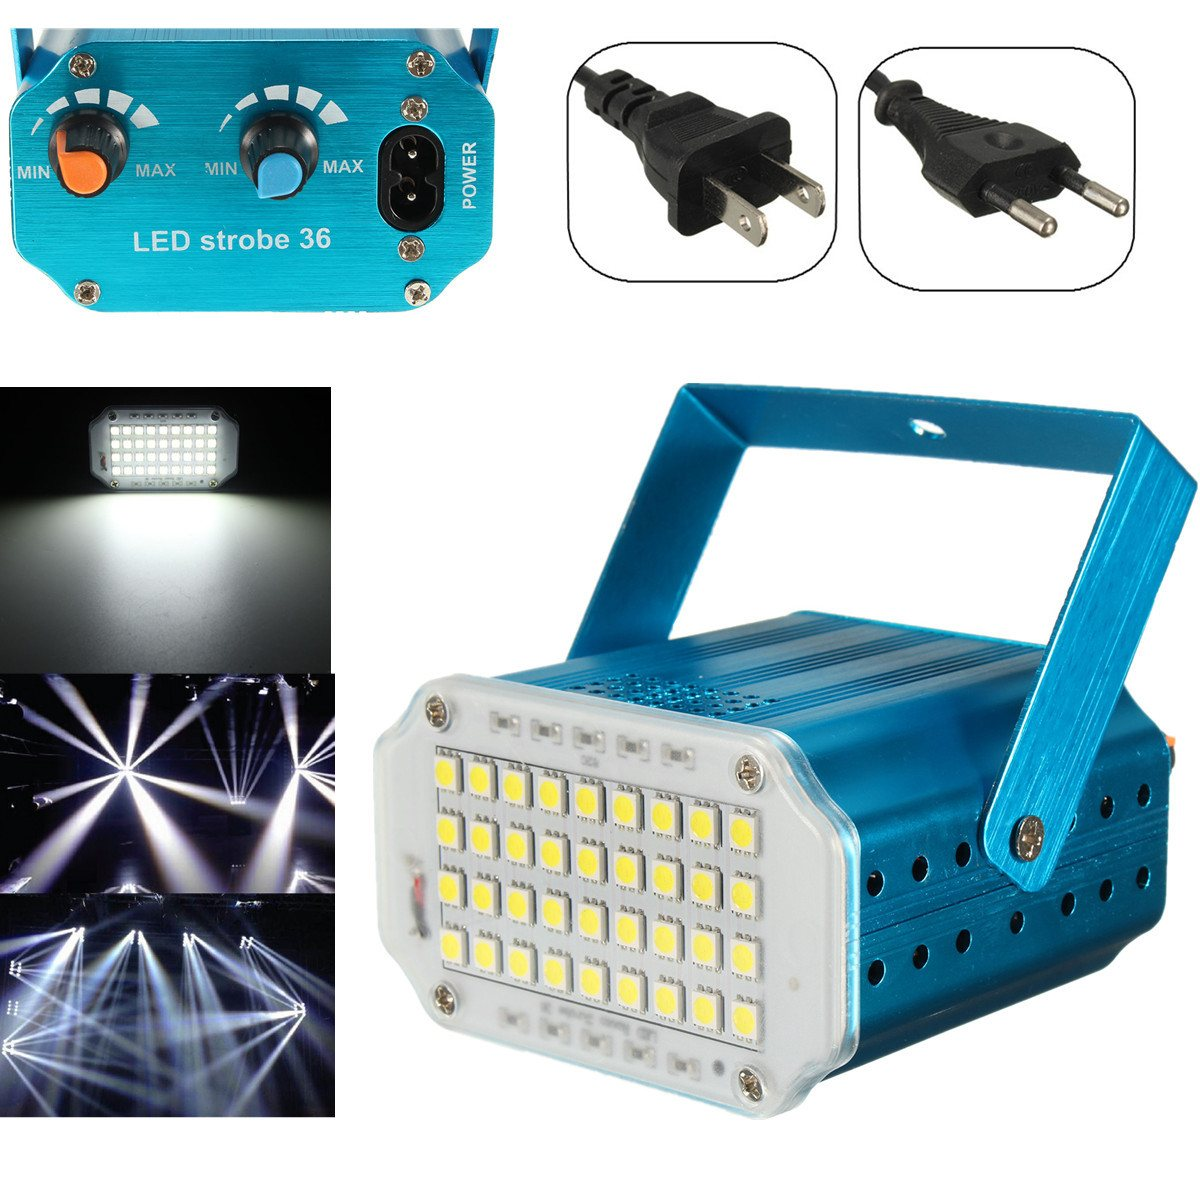 Adjustment LED RGB White Lighting Projector Laser Strobe Stage Light Effect DJ Disco Party Club KTV Night Lamp Bulb US EU Plug laideyi 36 rgb led stage light effect laser party disco dj bar effect up lighting dmx projection lamp ktv party light